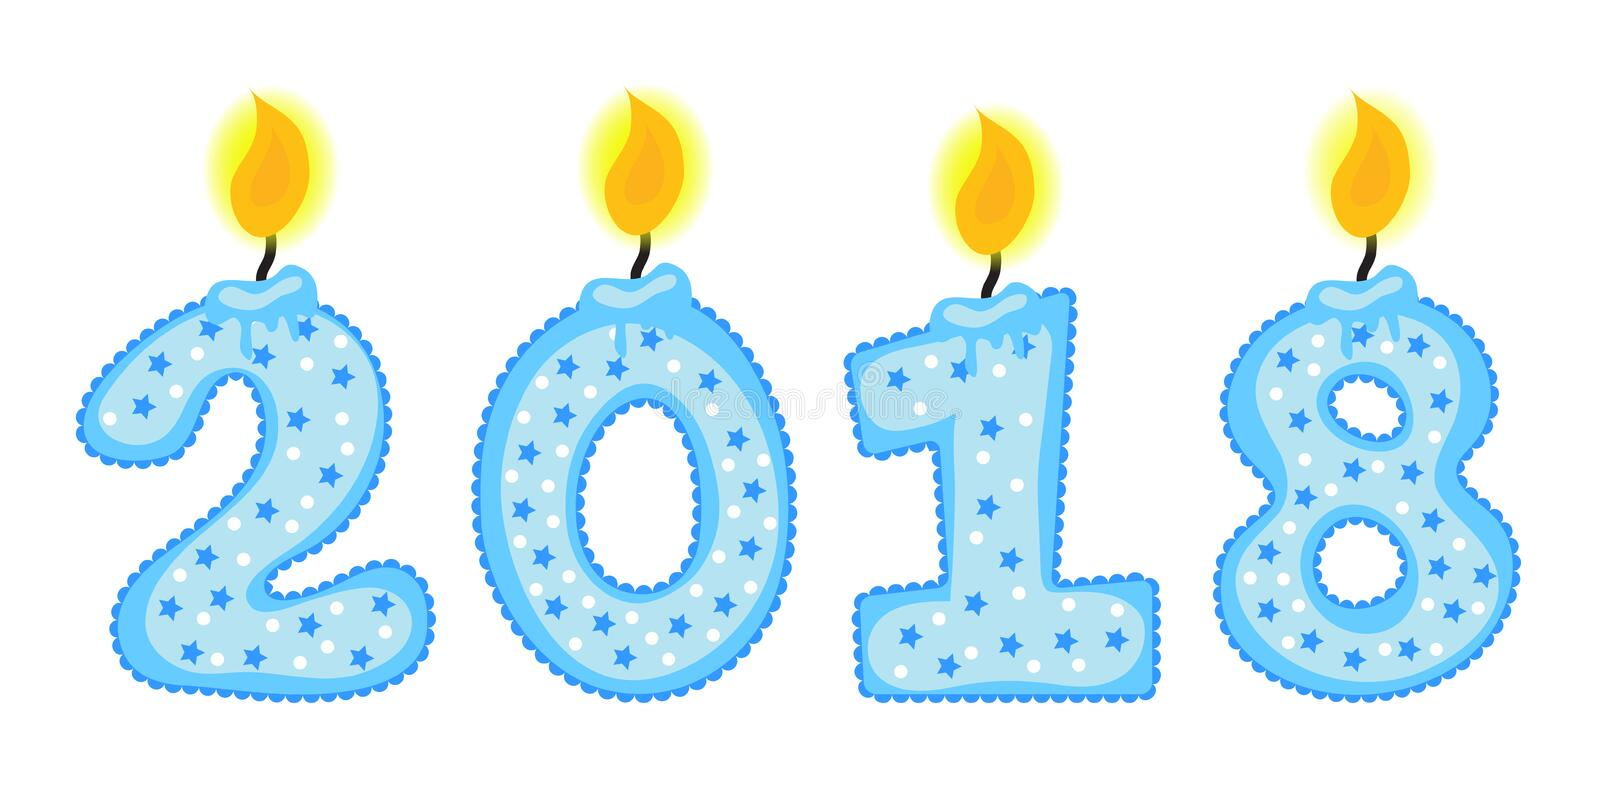 New Year 2018 figures, numbers of candles, isolated on a white background. Vector illustration. stock illustration